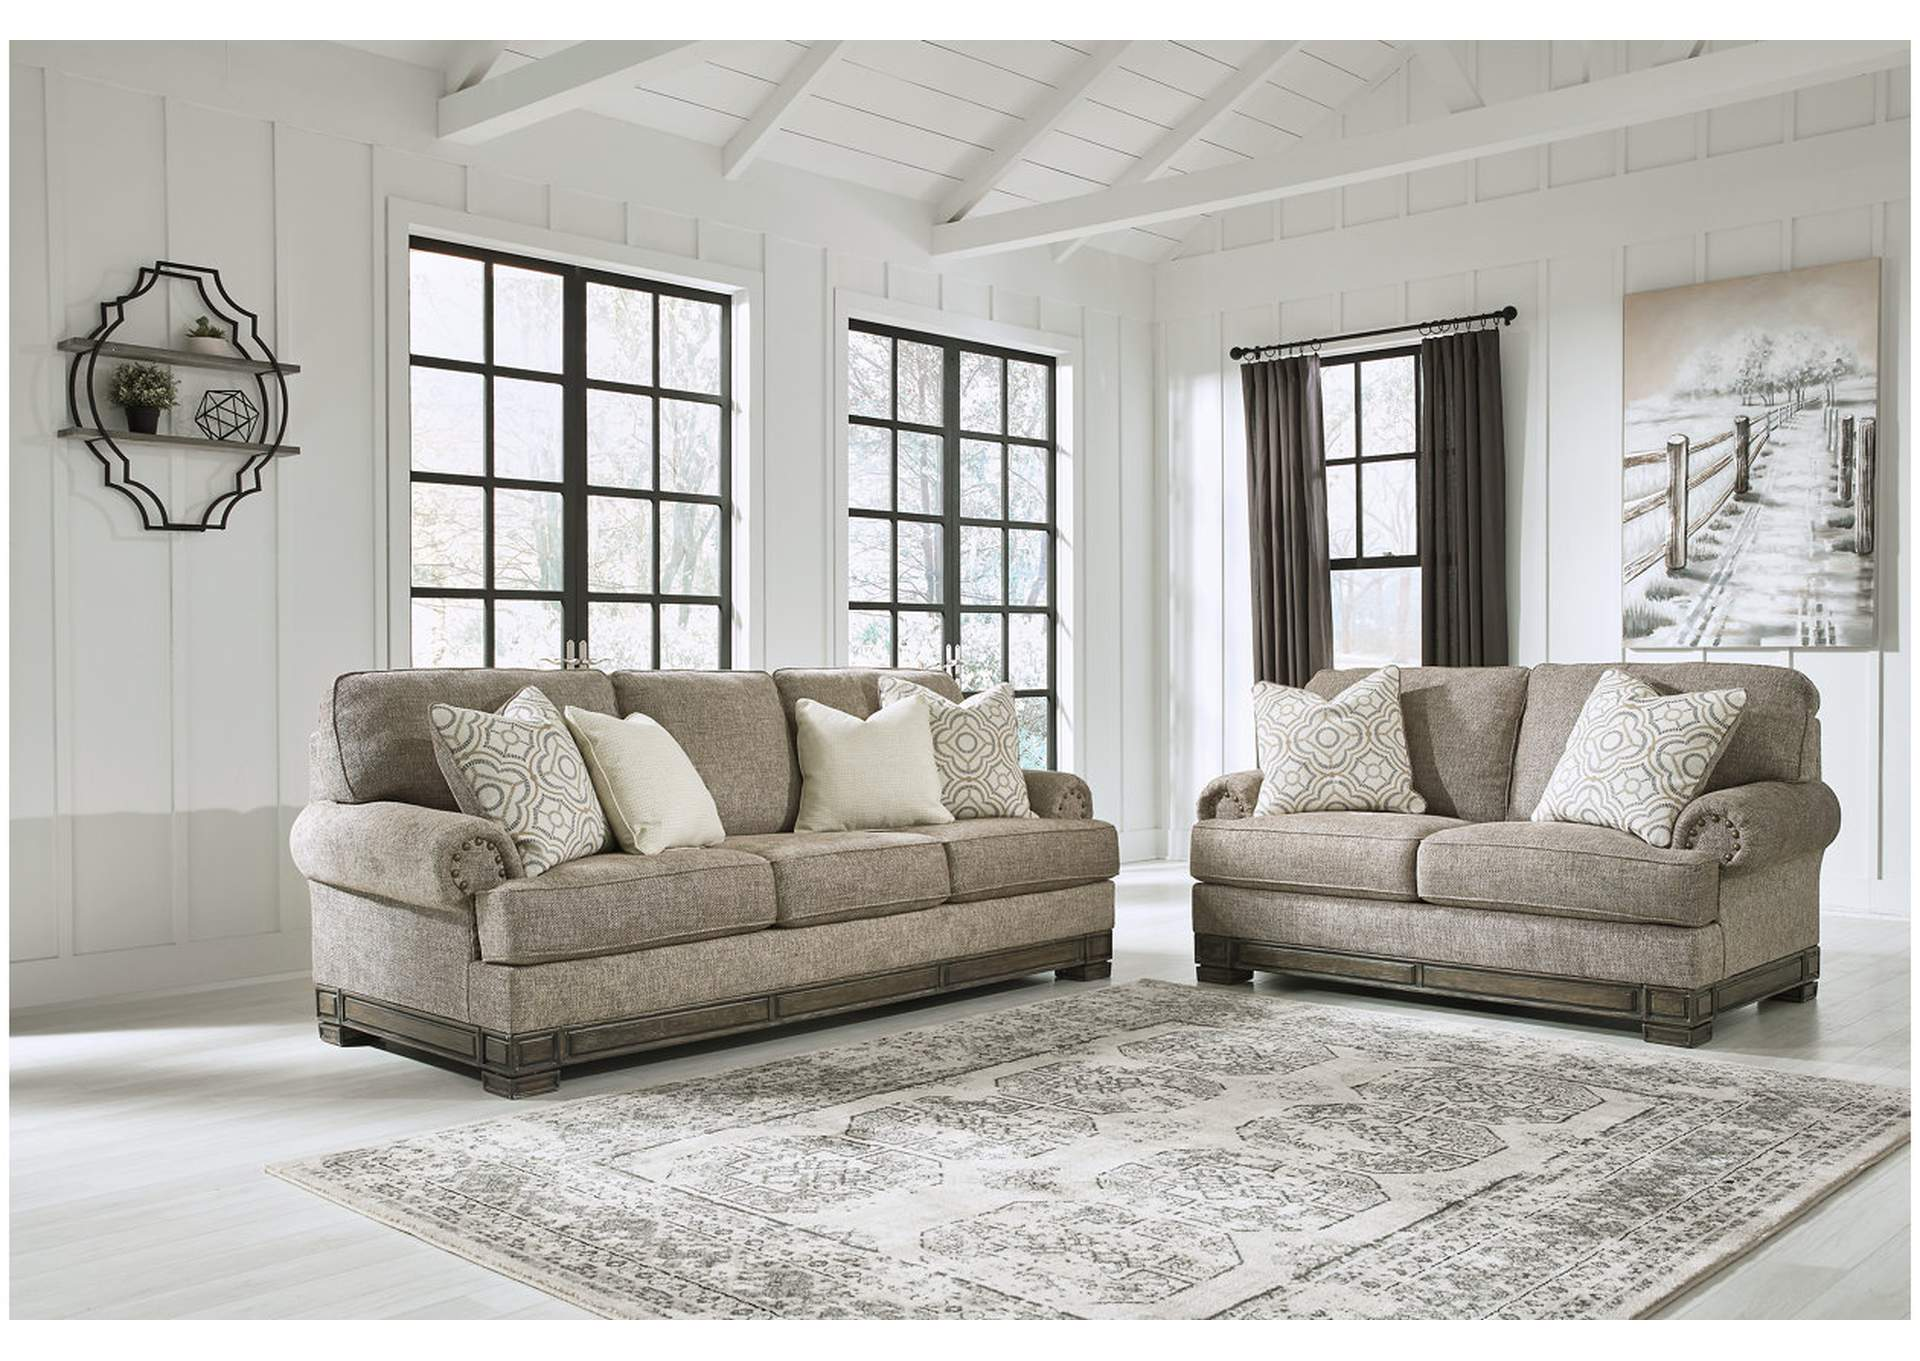 Einsgrove Sandstone Sofa and Loveseat,Signature Design By Ashley